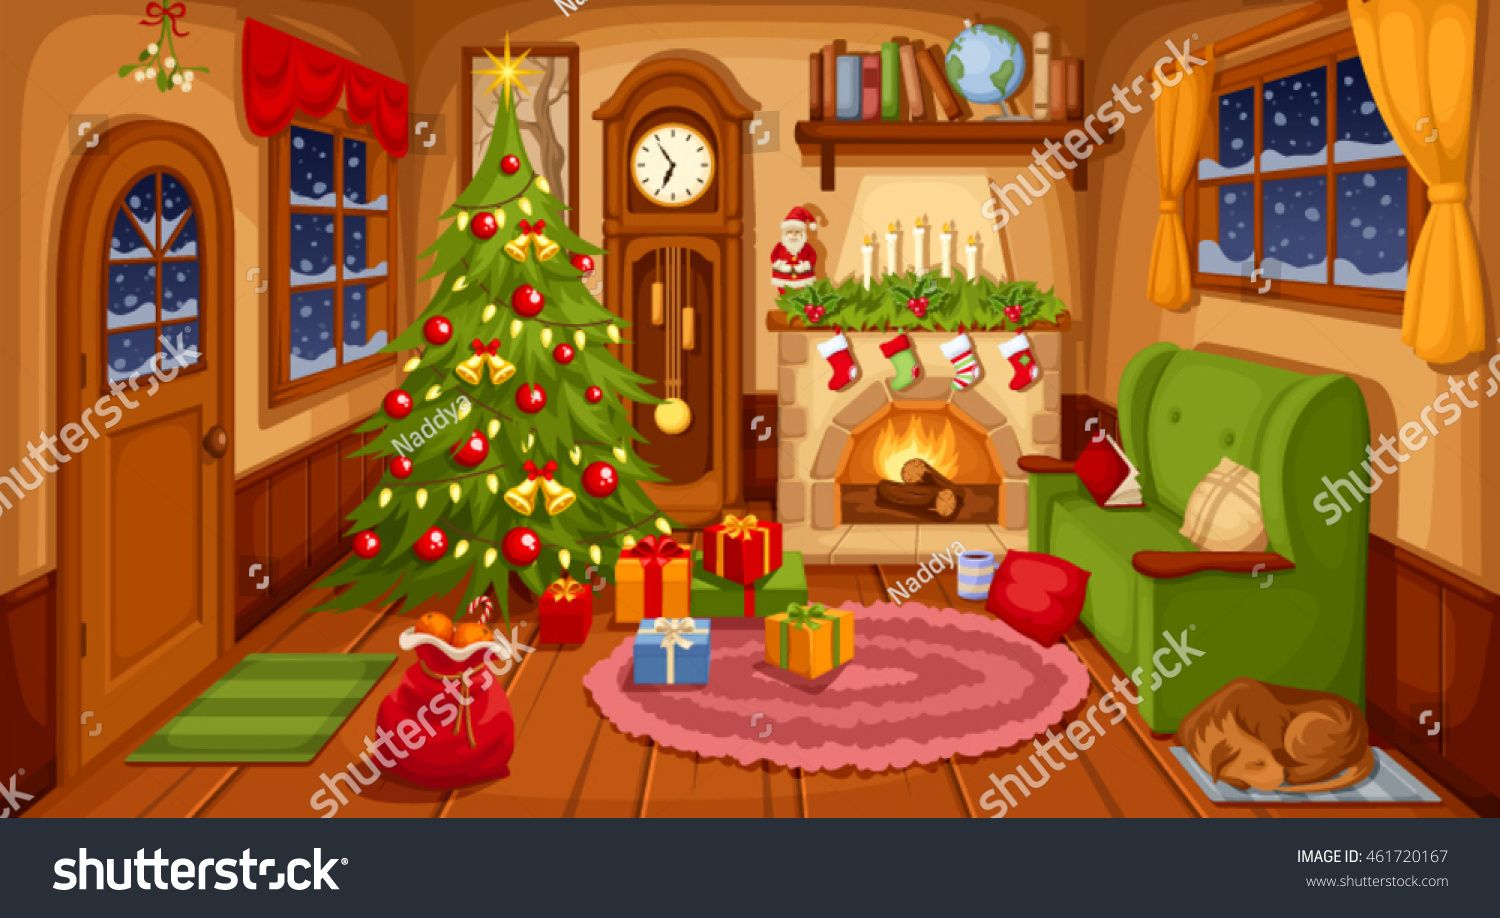 Pin By Aygh On Xristoygenna Christmas Photography Backdrops Christmas Room Christmas Living Rooms